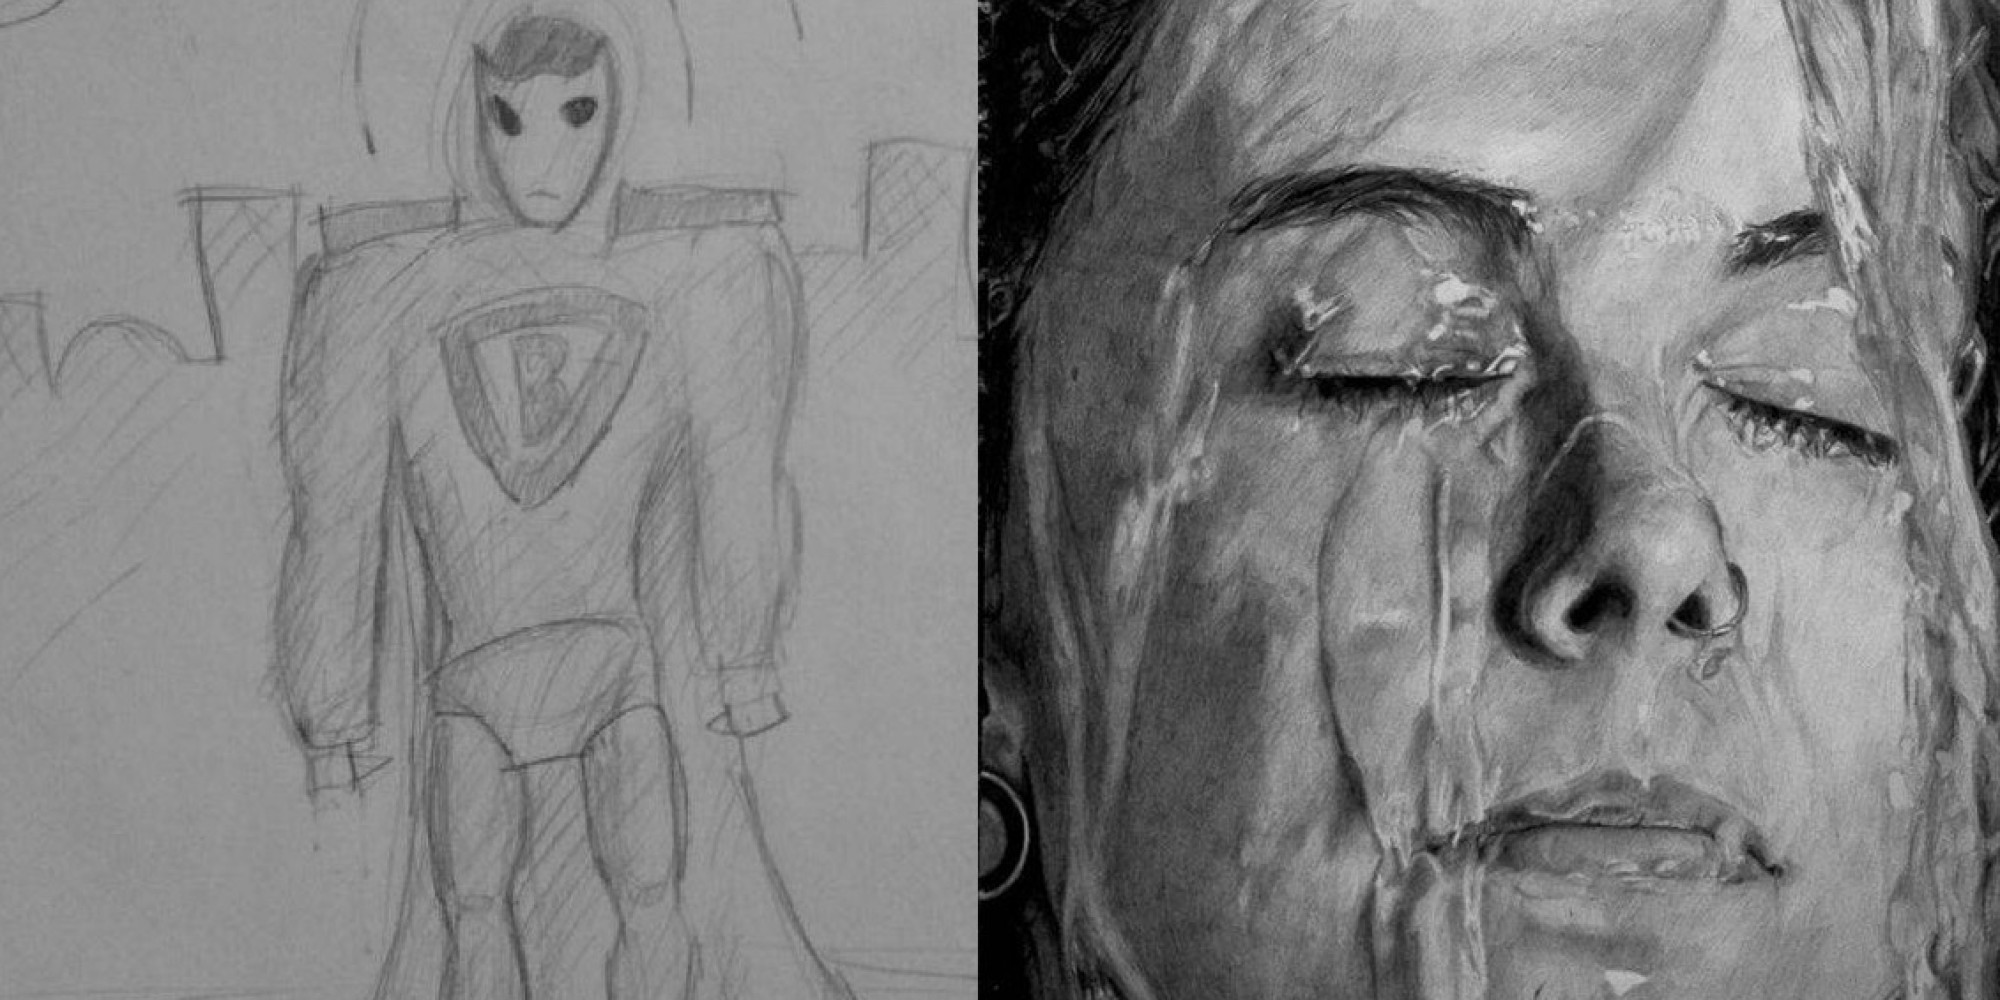 Pin by peer reviEW on A R T   Drawings, Kawaii drawings ...  Cool Pictures To Draw For Art Class